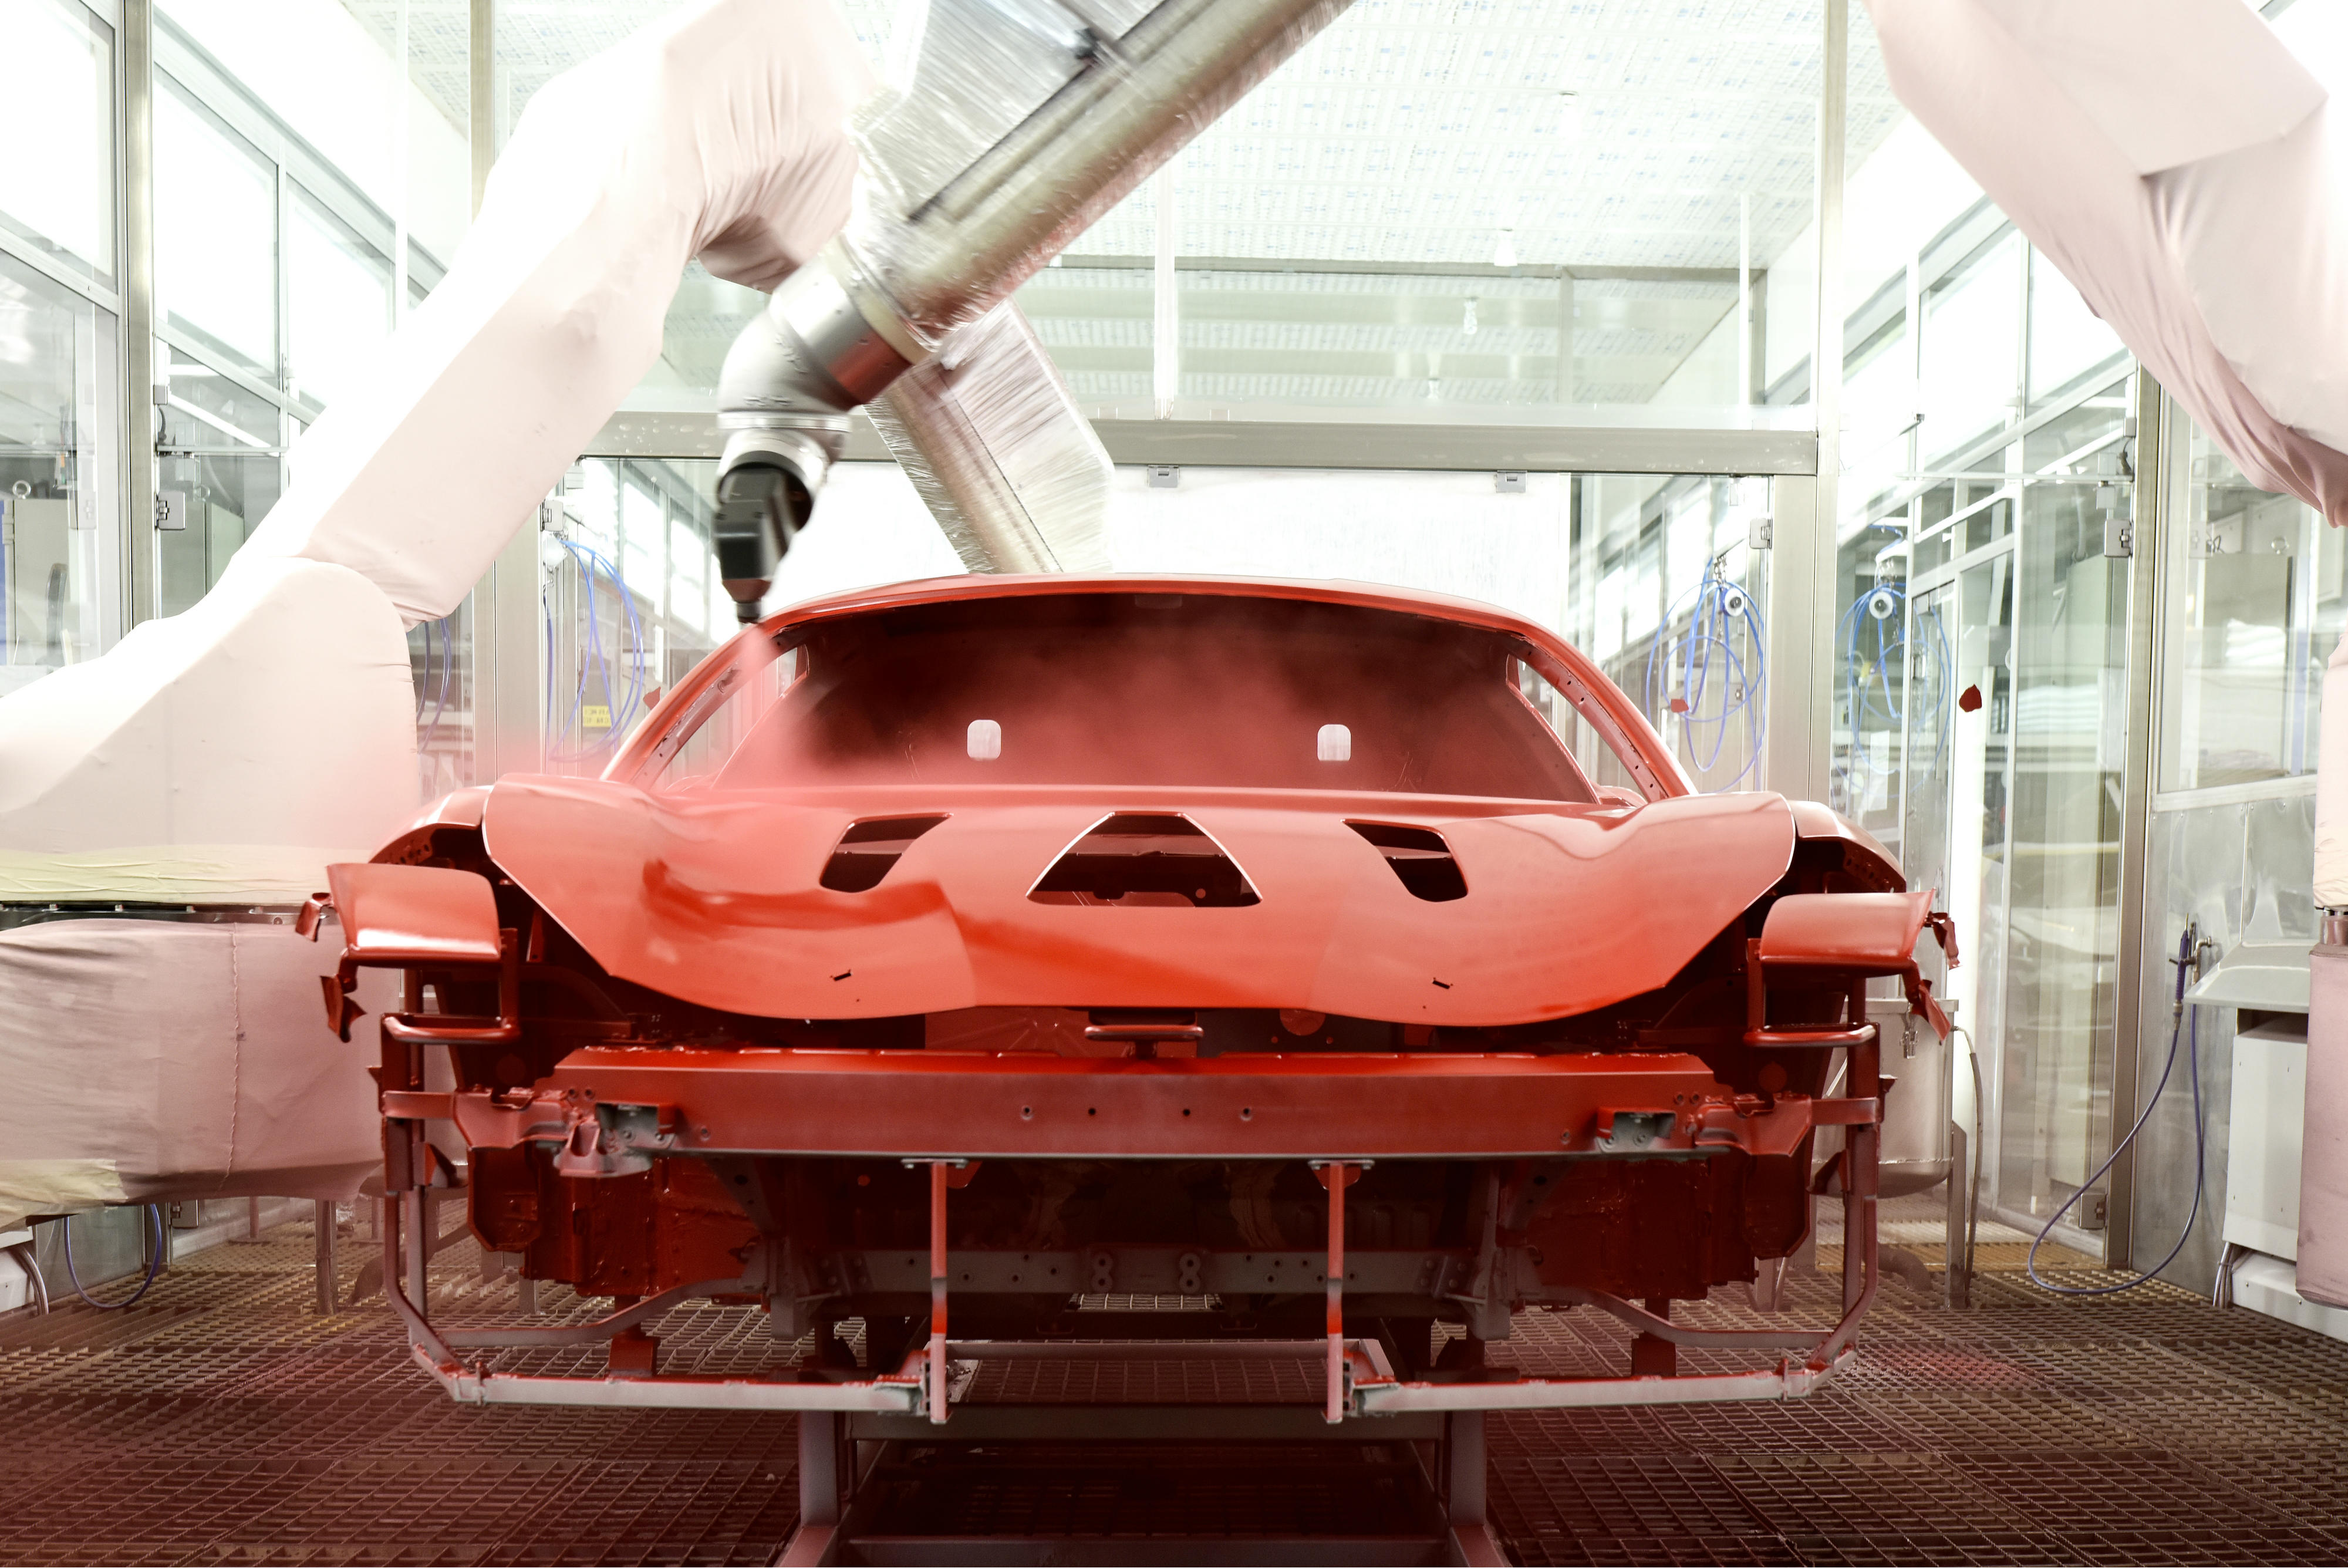 The Italian supercar marque has introduced an innovative low-temperature paint system, making Ferrari the world's first car manufacturer to adopt PPG's new Low Cure clear-coats technology.